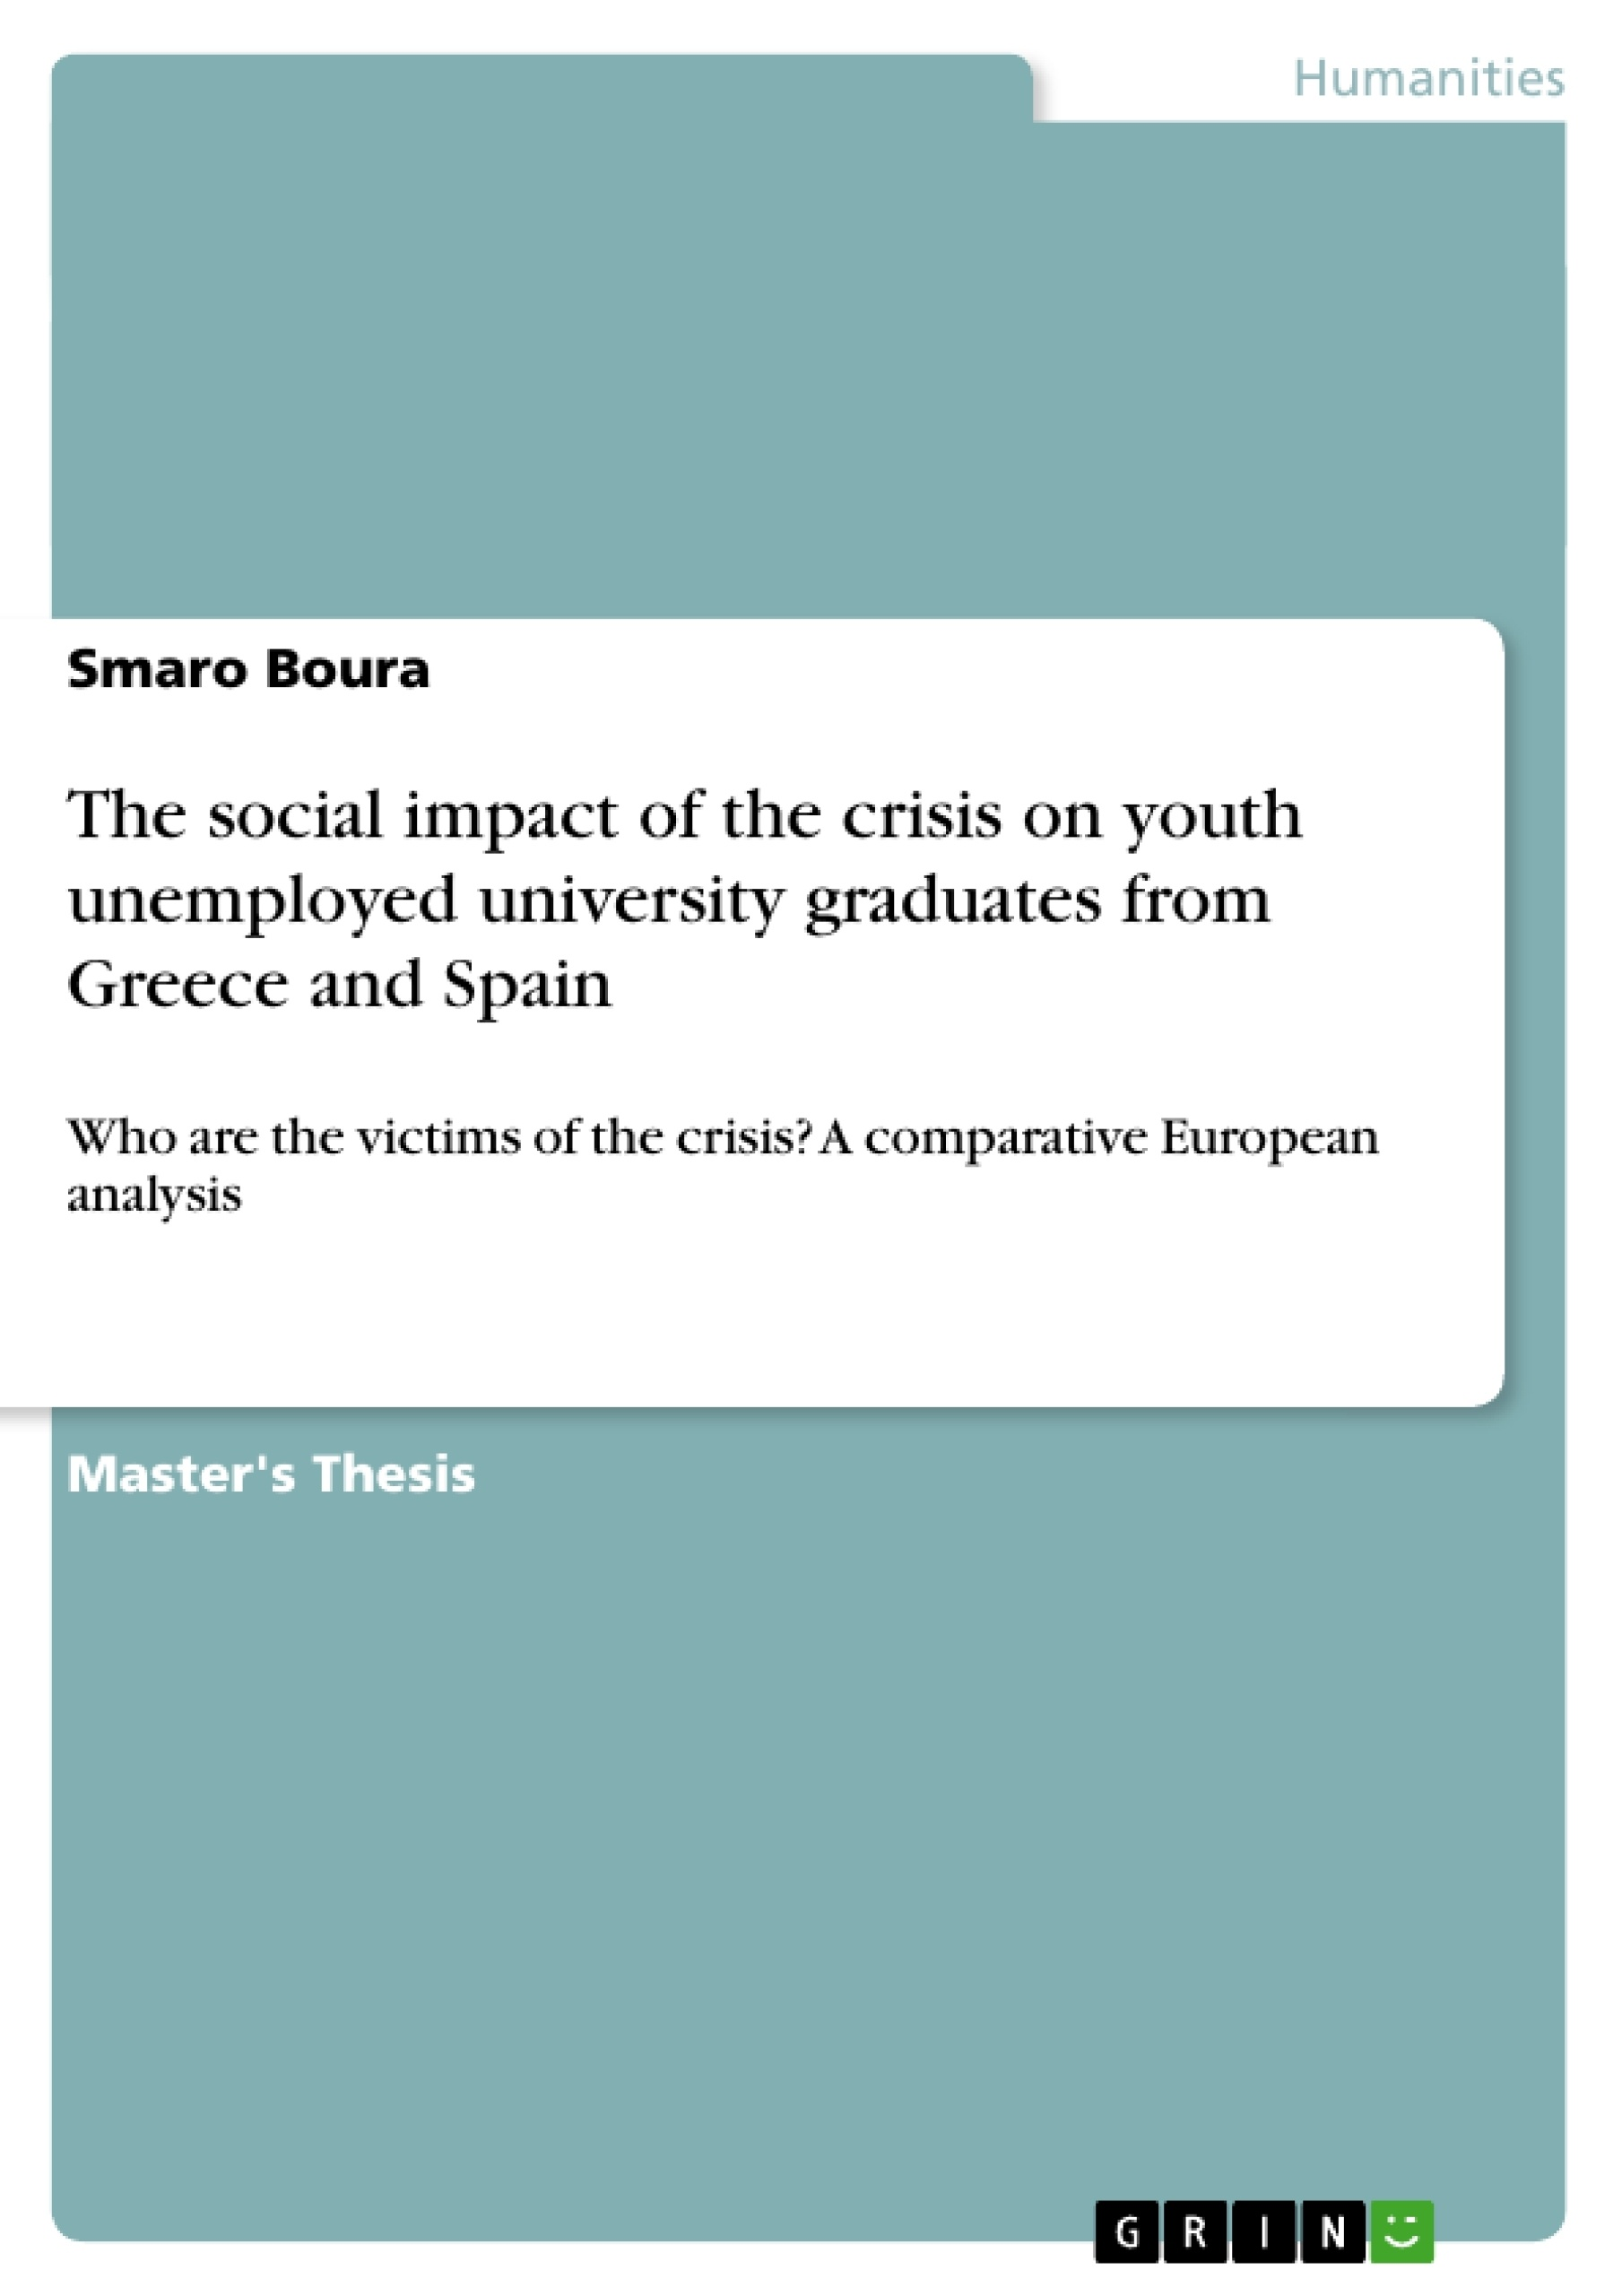 GRIN - The social impact of the crisis on youth unemployed university  graduates from Greece and Spain